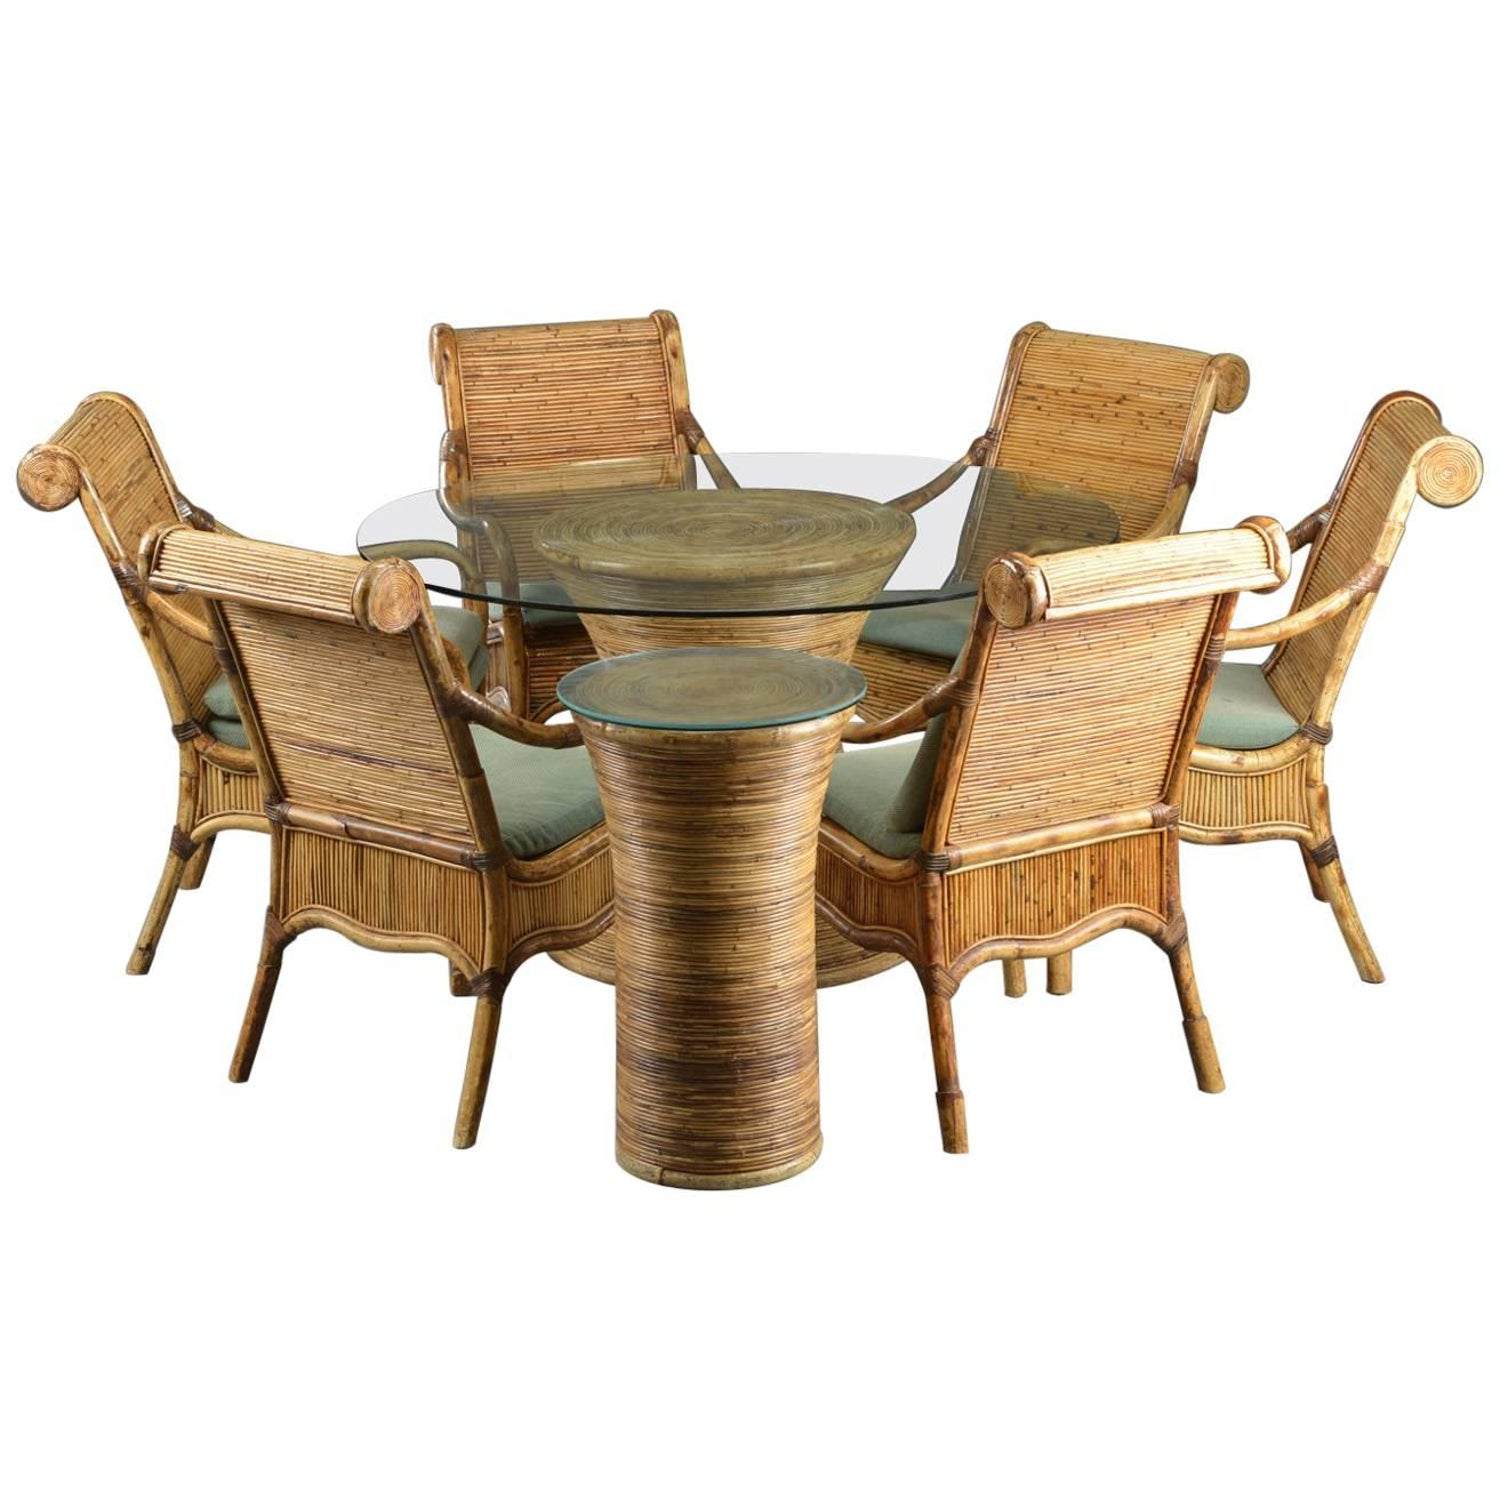 Rattan Tables 253 For Sale at 1stdibs